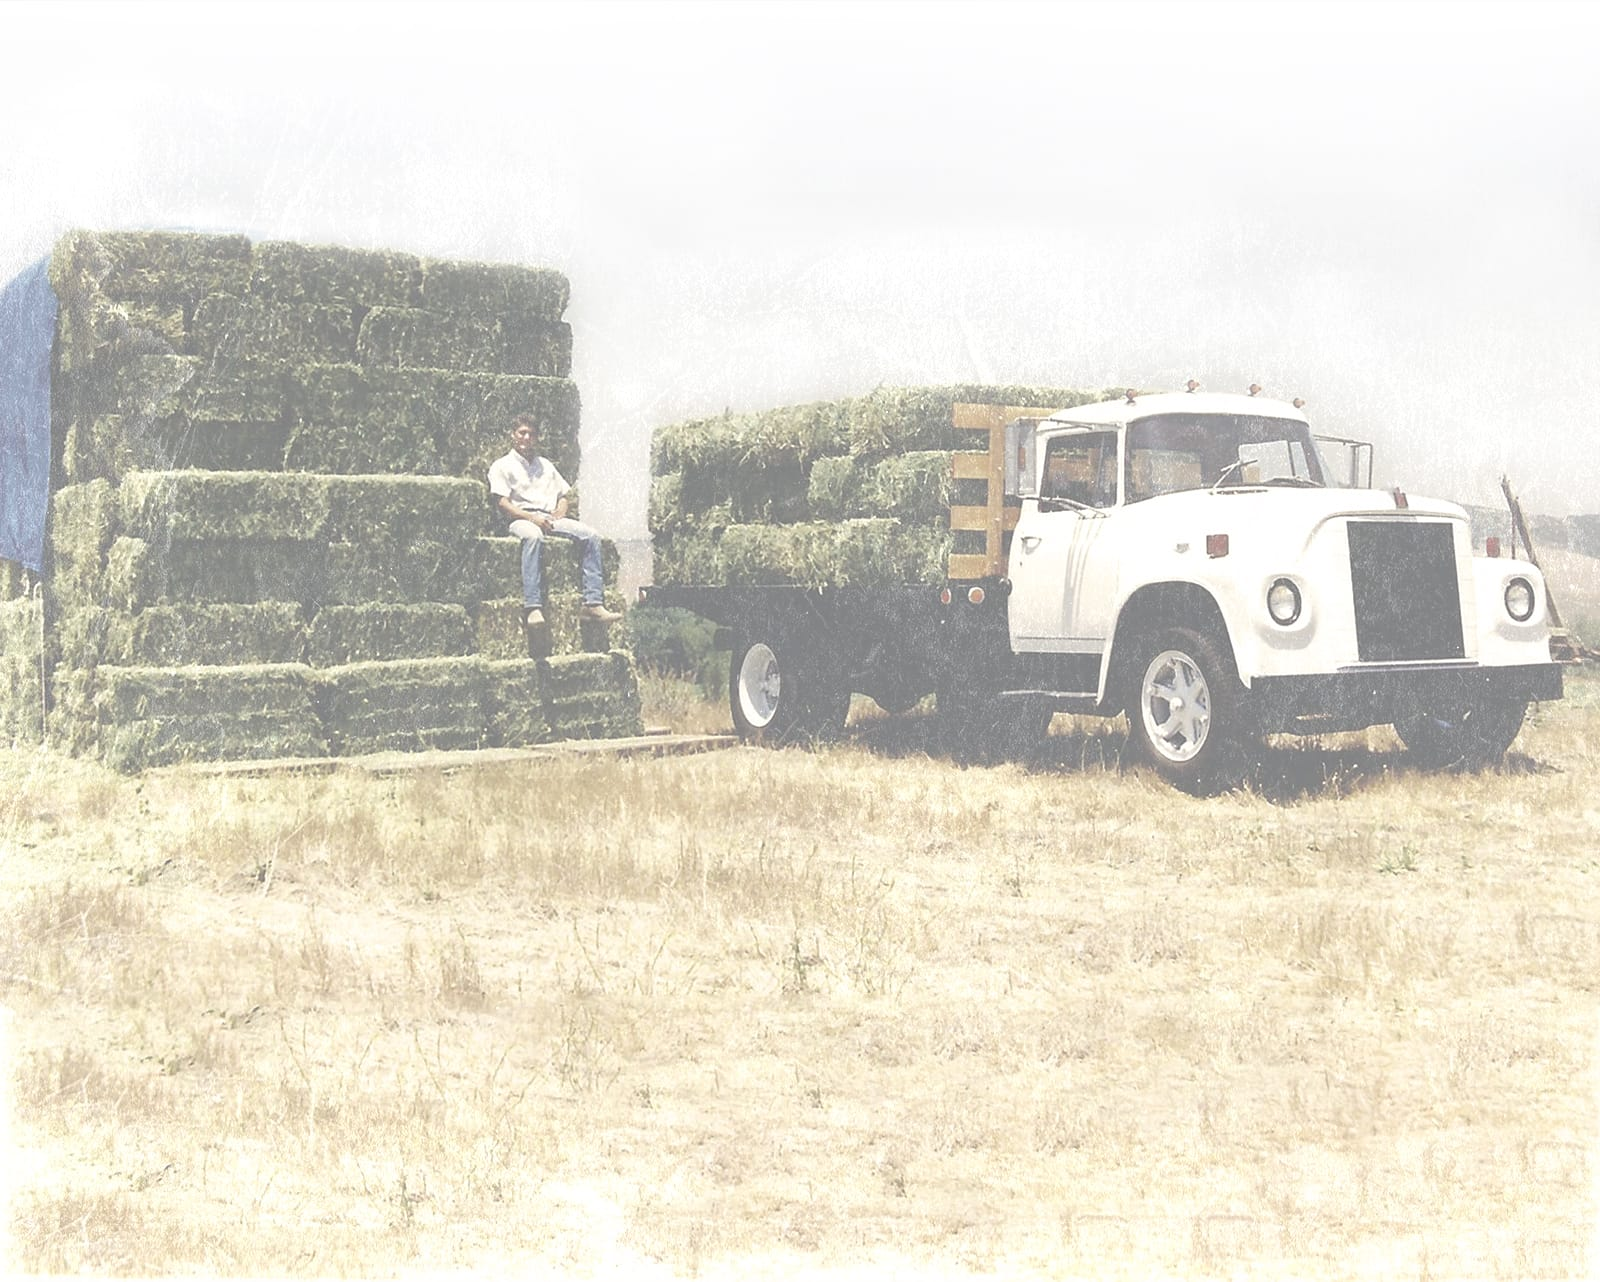 It all started with a bale of hay and a pickup truck